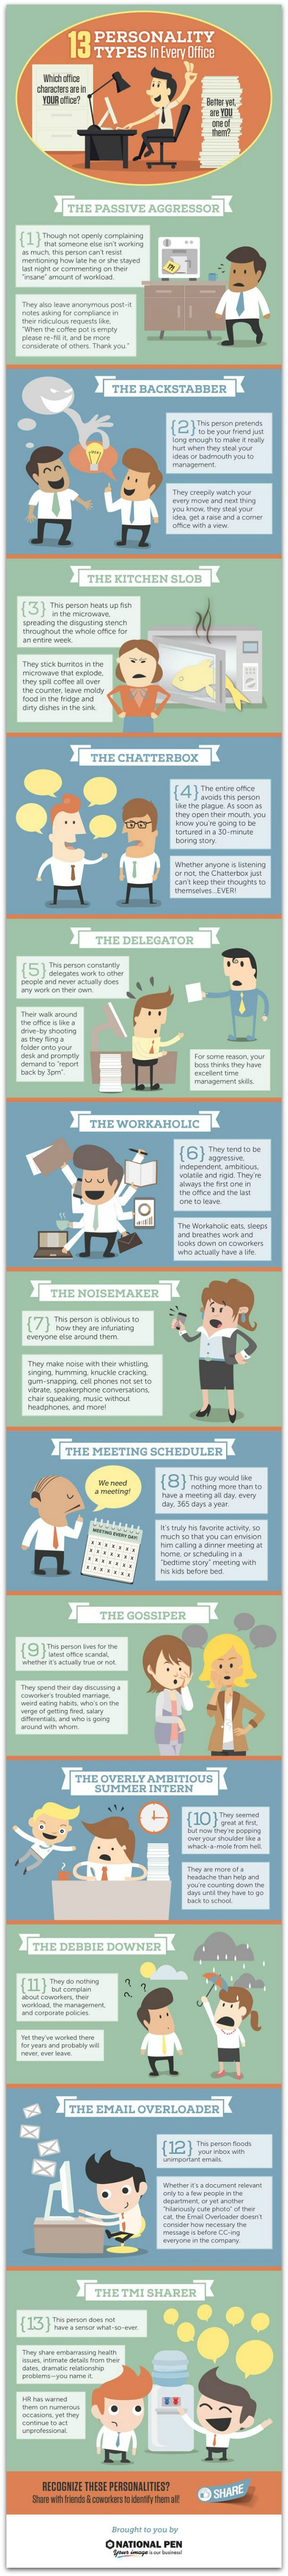 Office_Personality_Types_Infographic